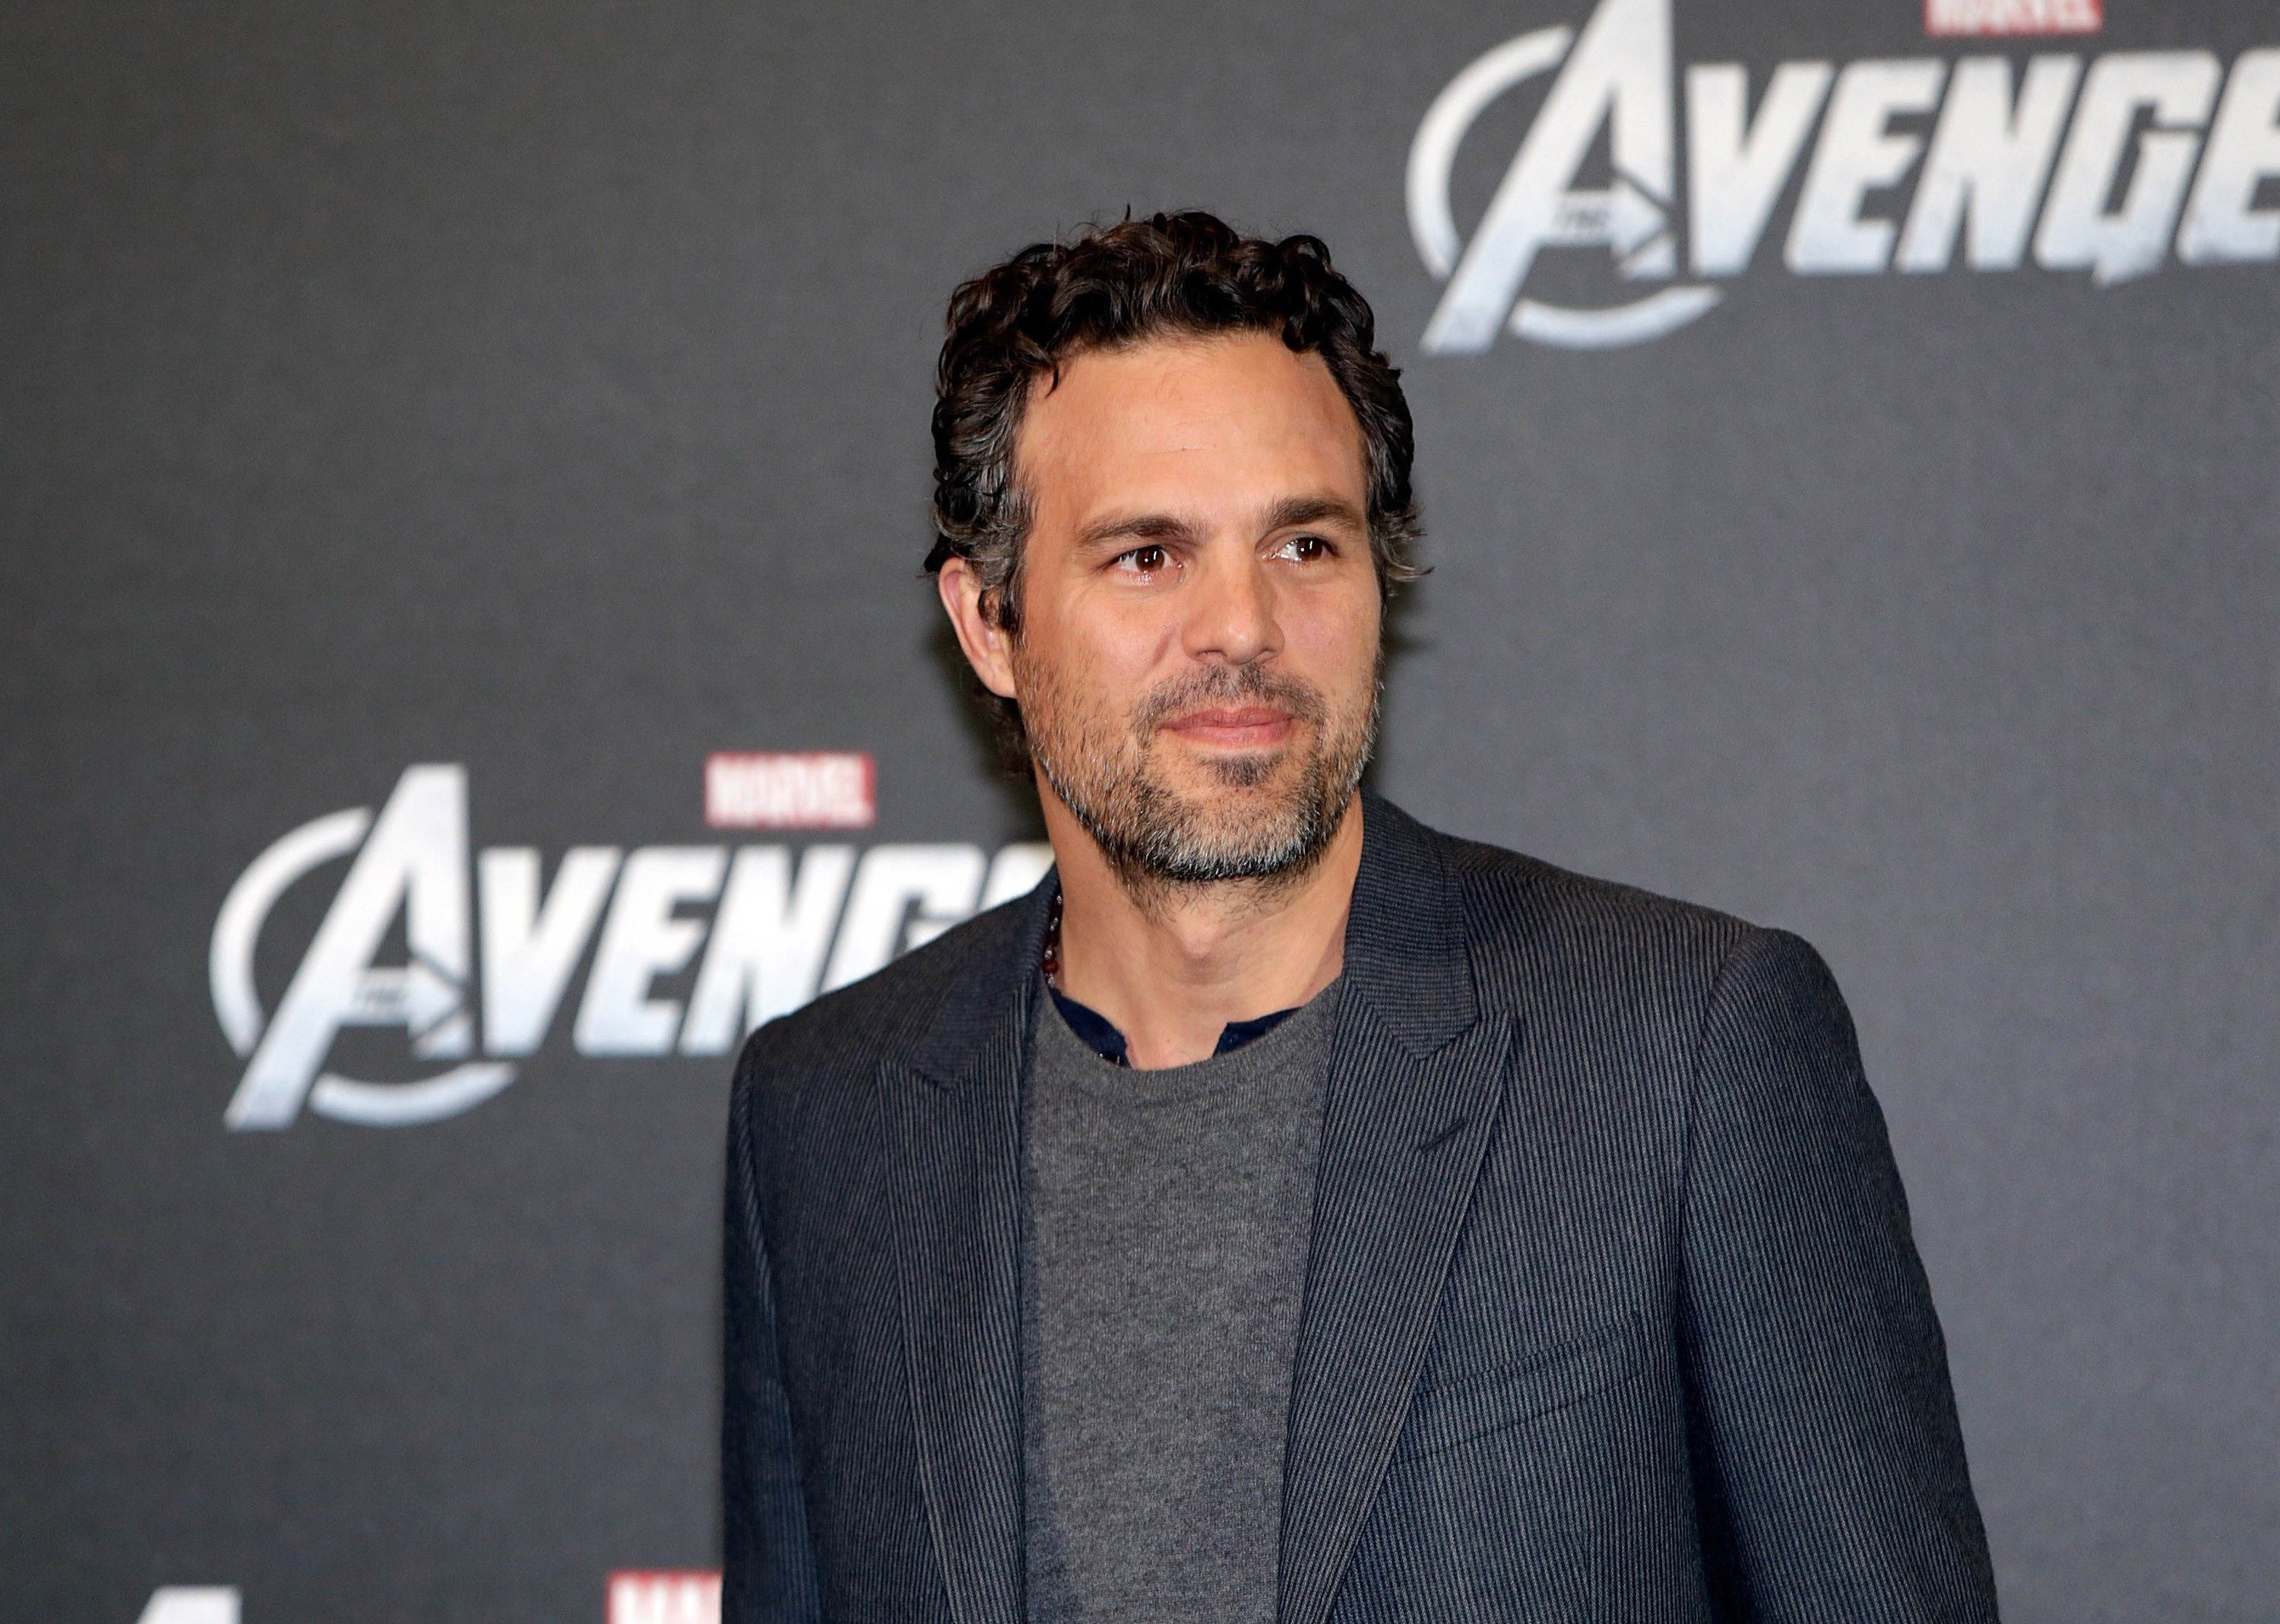 Mark Ruffalo at Ritz Carlton on April 23, 2012 in Berlin, Germany | Photo: Getty Images